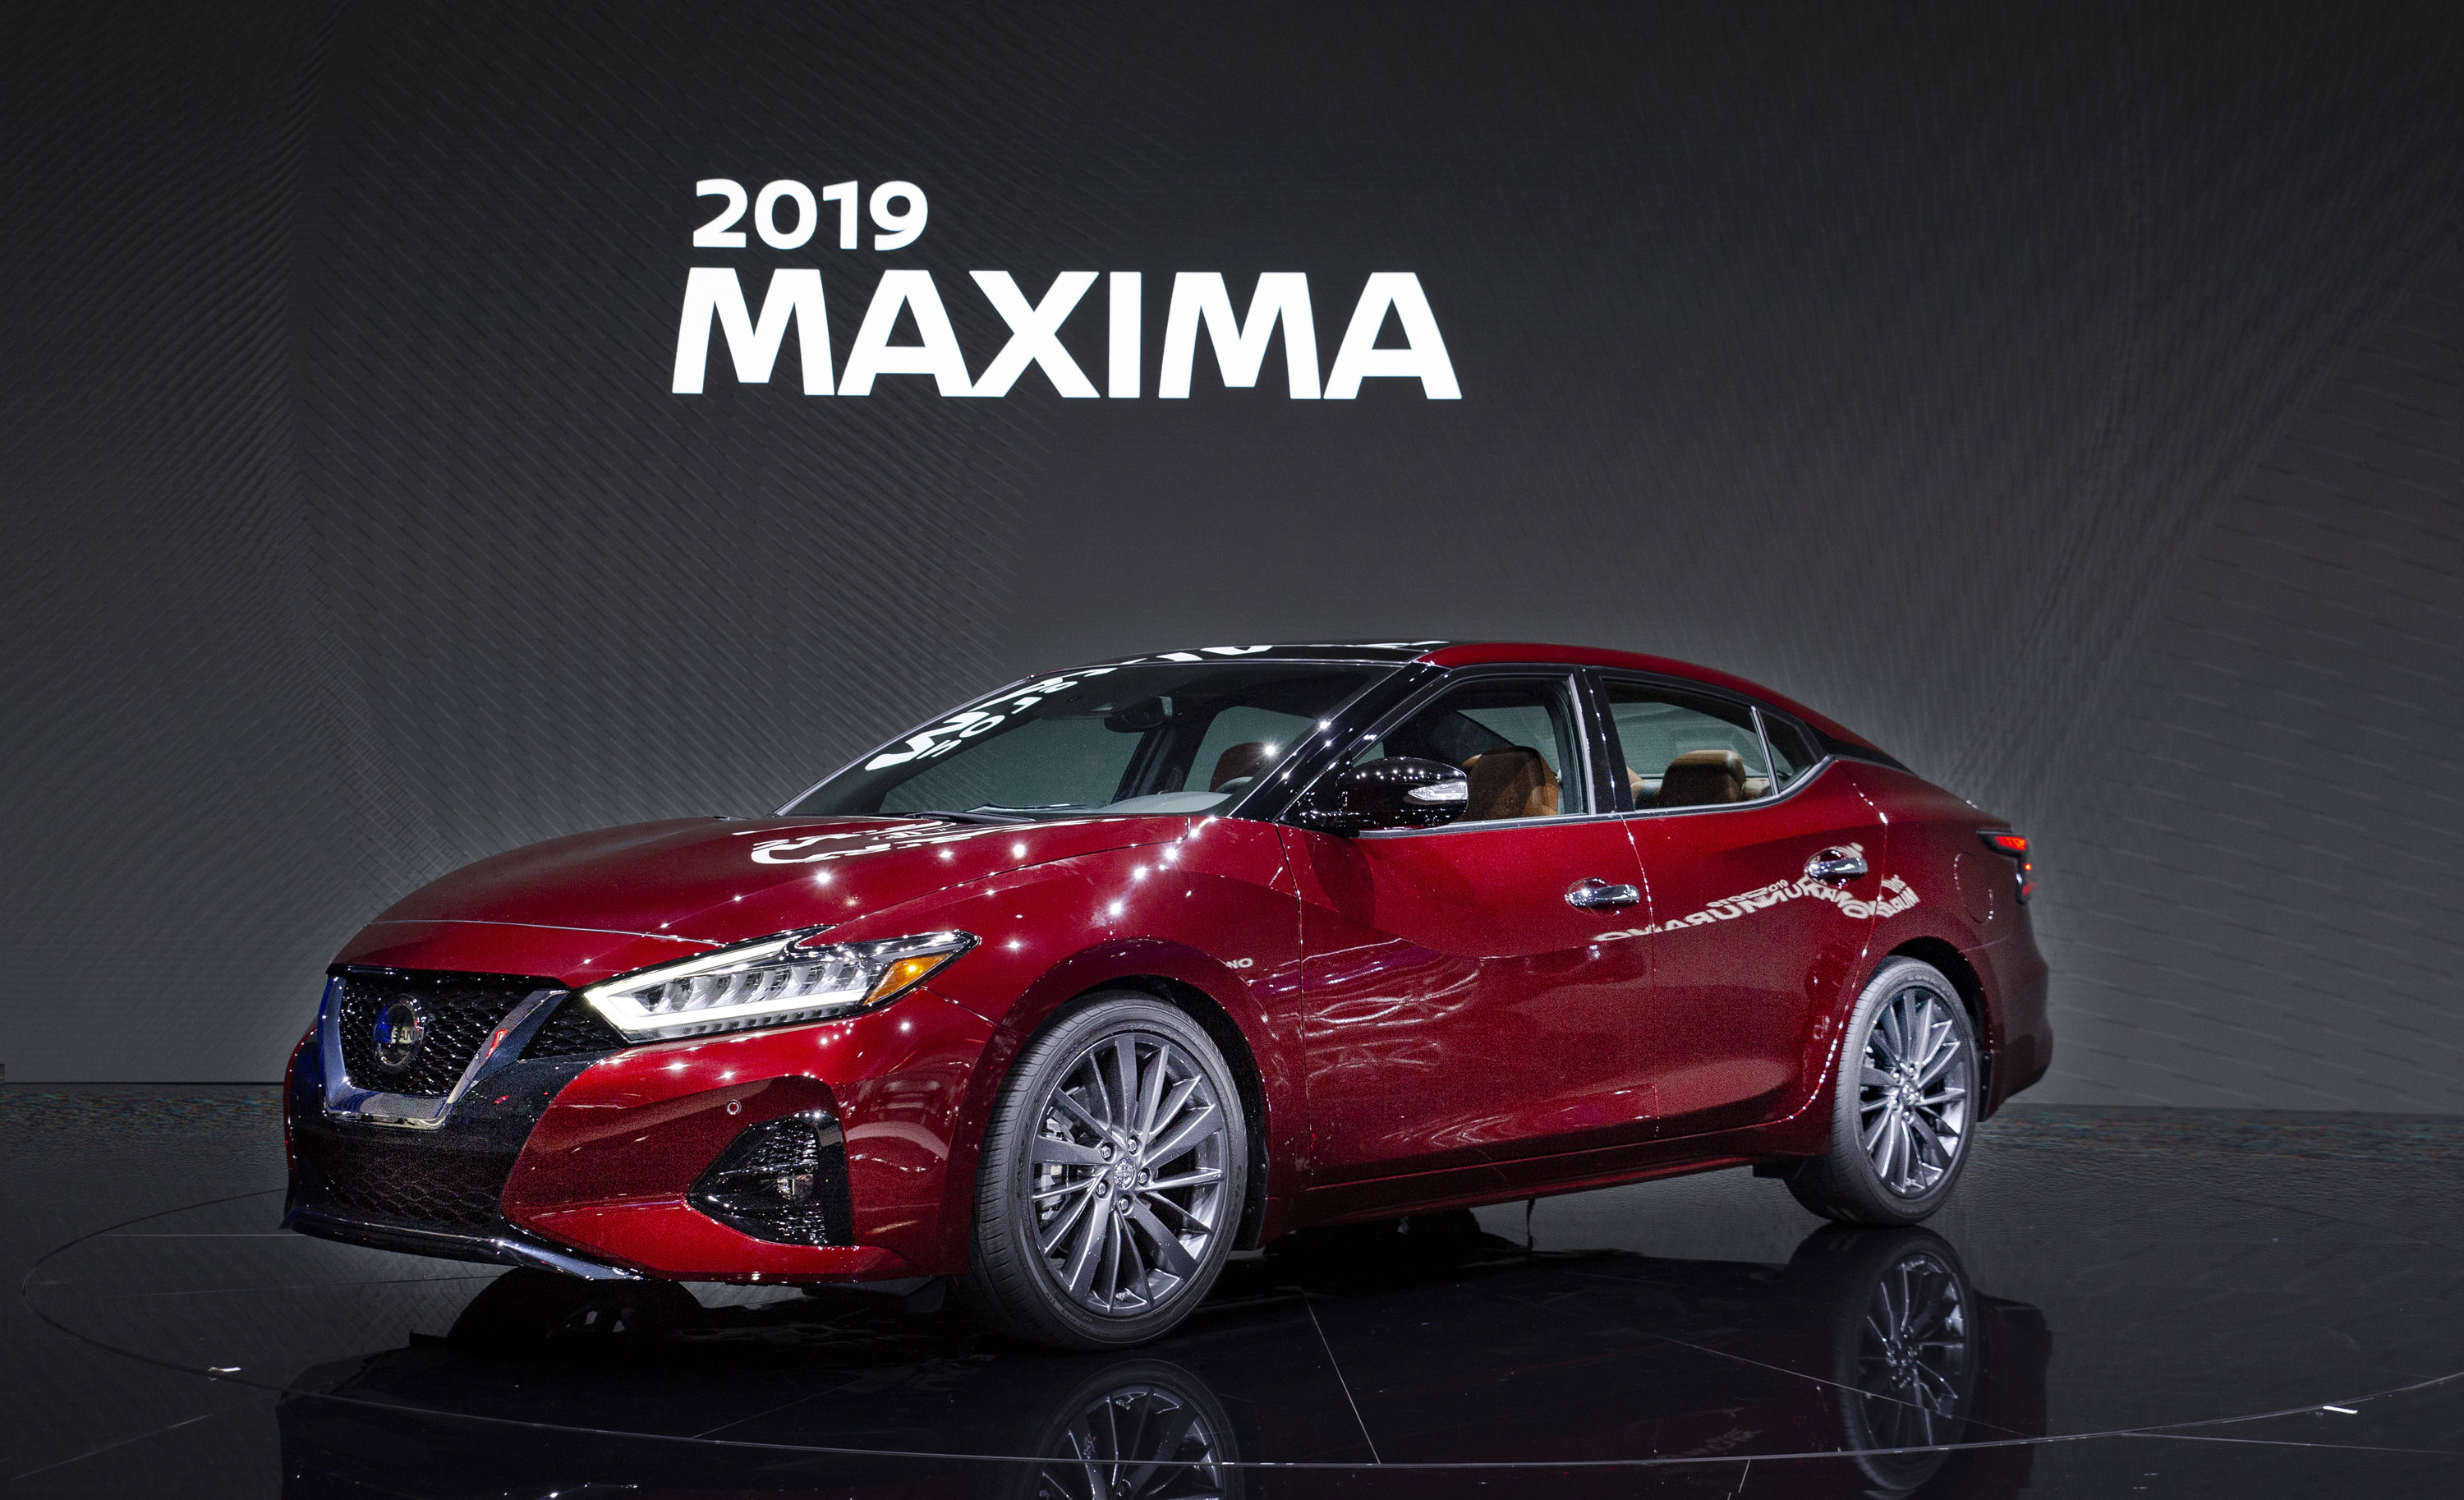 Nissan reveals purchase details about new 2019 Maxima